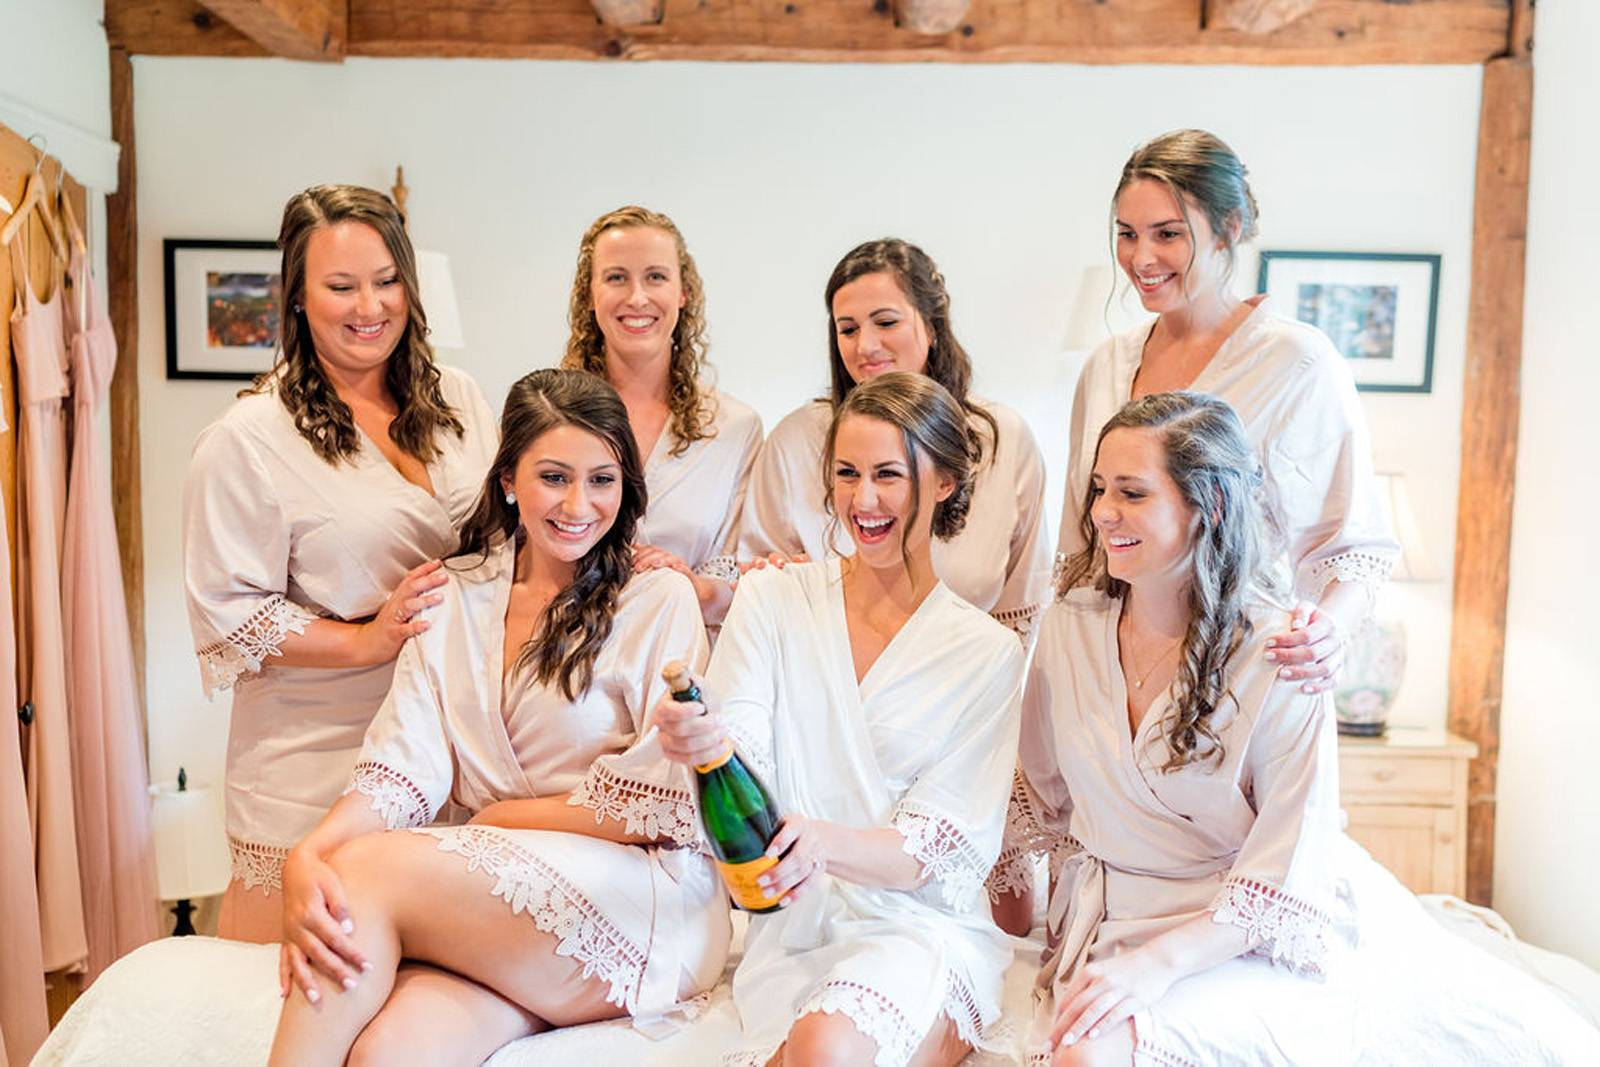 Bride and bridesmaid sitting on bed and popping champagne